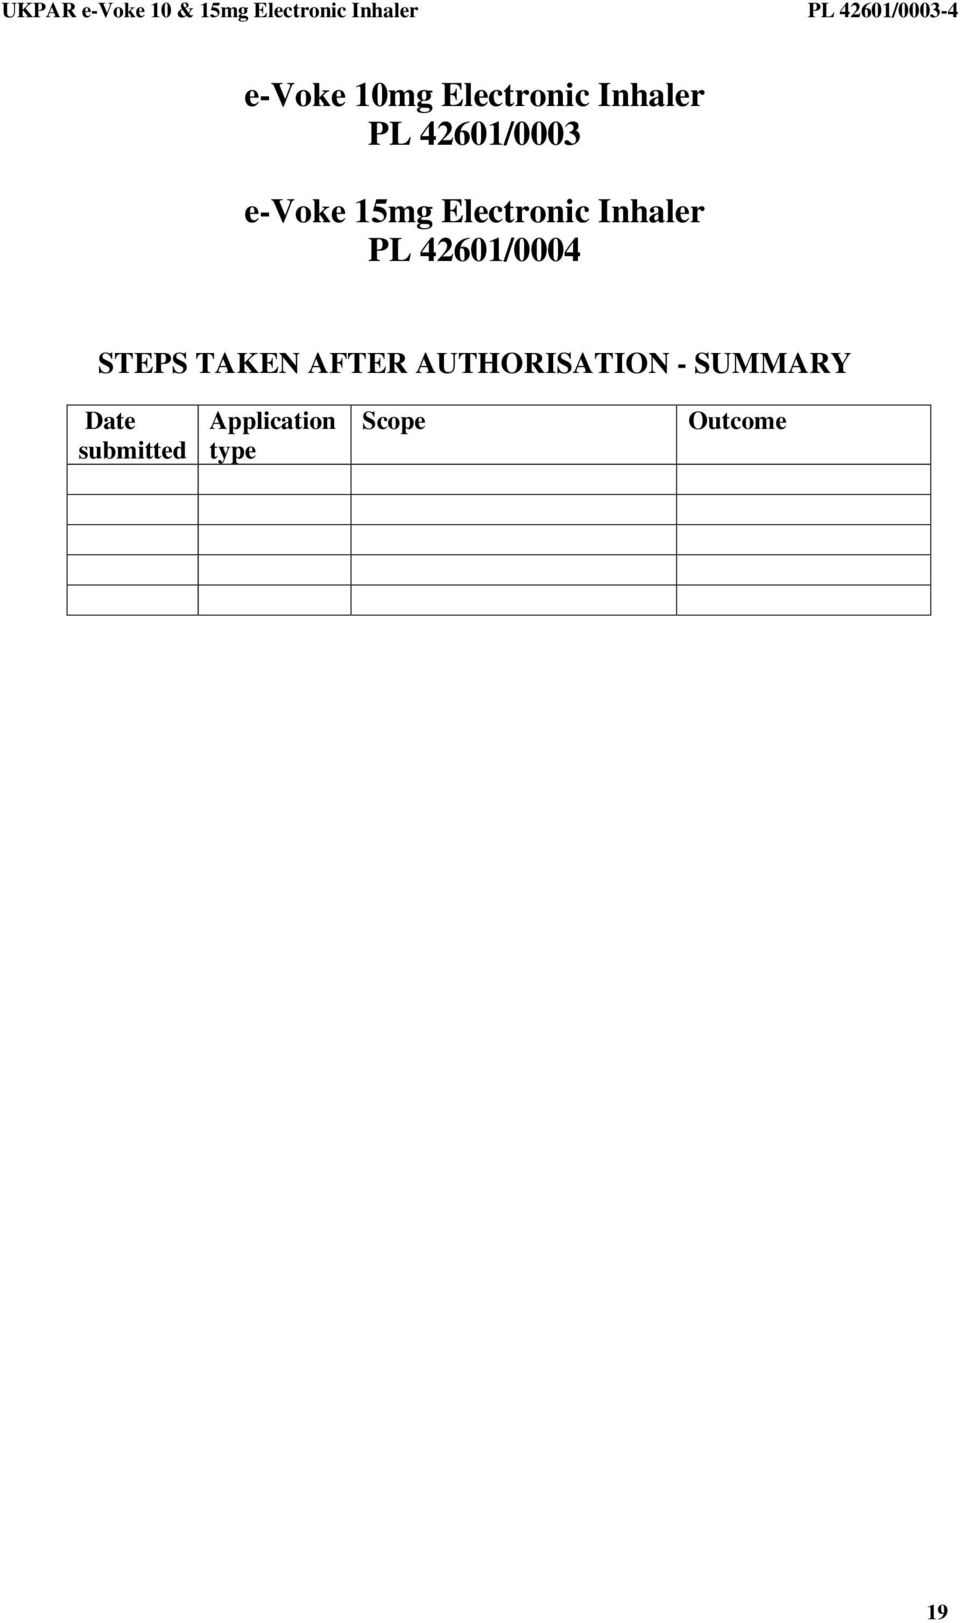 STEPS TAKEN AFTER AUTHORISATION - SUMMARY